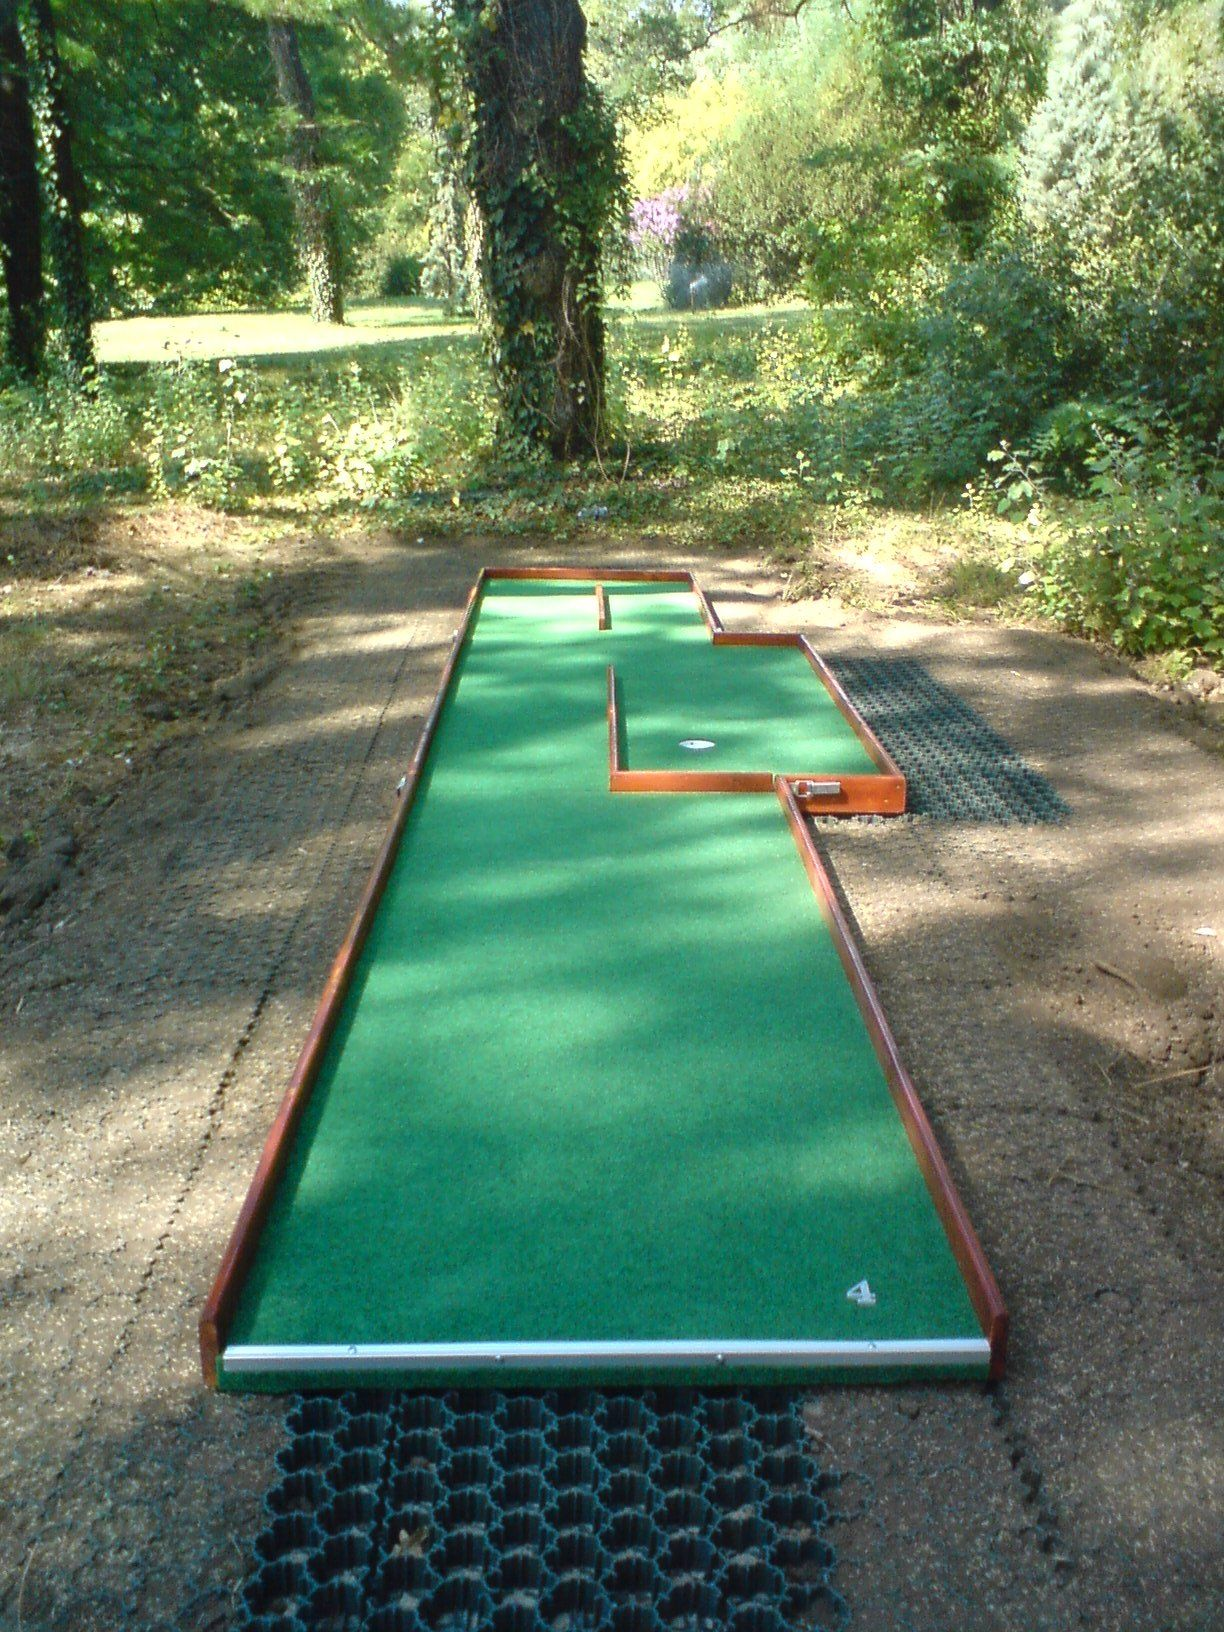 A Course We Have Build Or Made Mini Golf Course Miniature Golf Course Miniature Golf